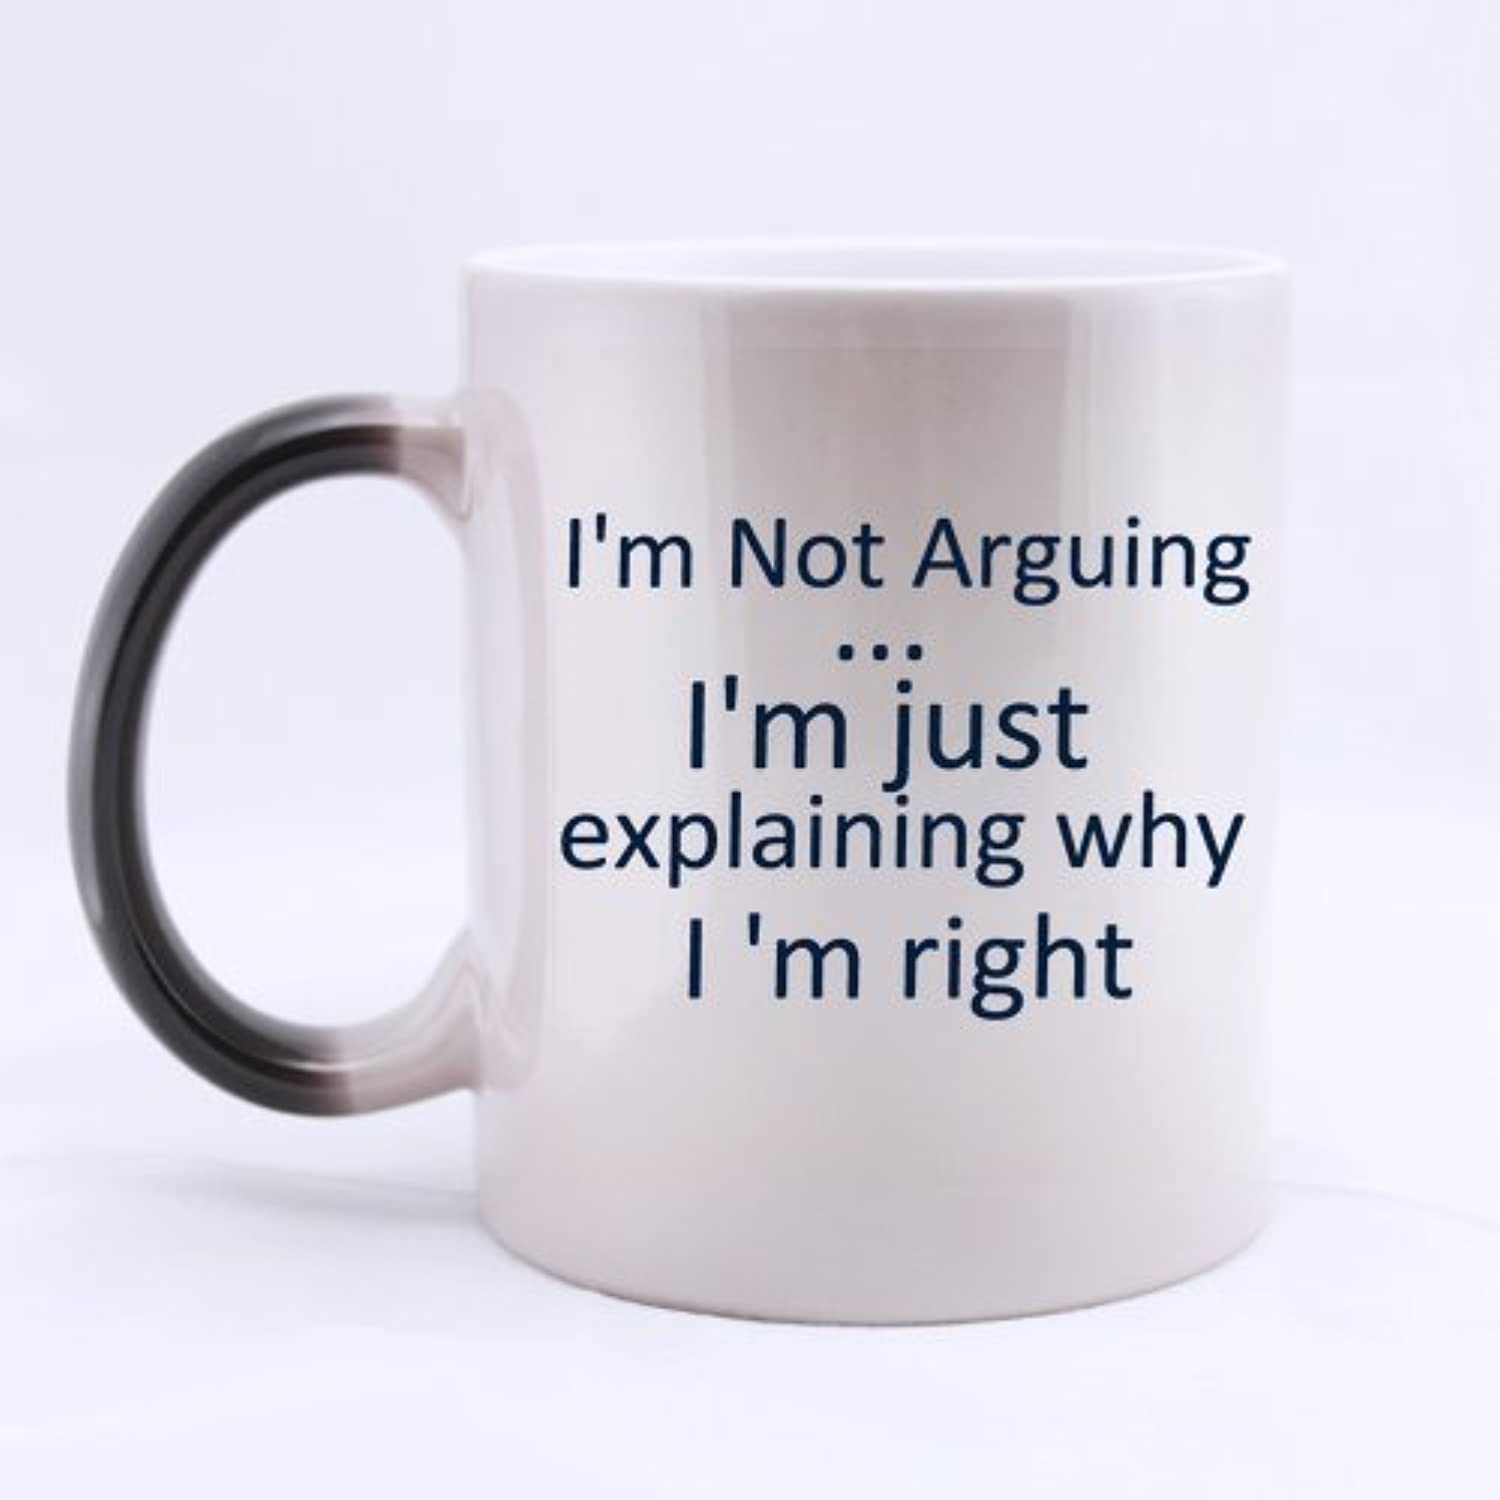 disfrutando de sus compras Sisters Sisters Sisters Brojohers Gifts Funny Quotes I'm Not Arguing... I'm just explaining why I'm right Tea Coffee Wine Cup 100% Ceramic 11-Ounce Morphing Mug by All Things AMZ  seguro de calidad